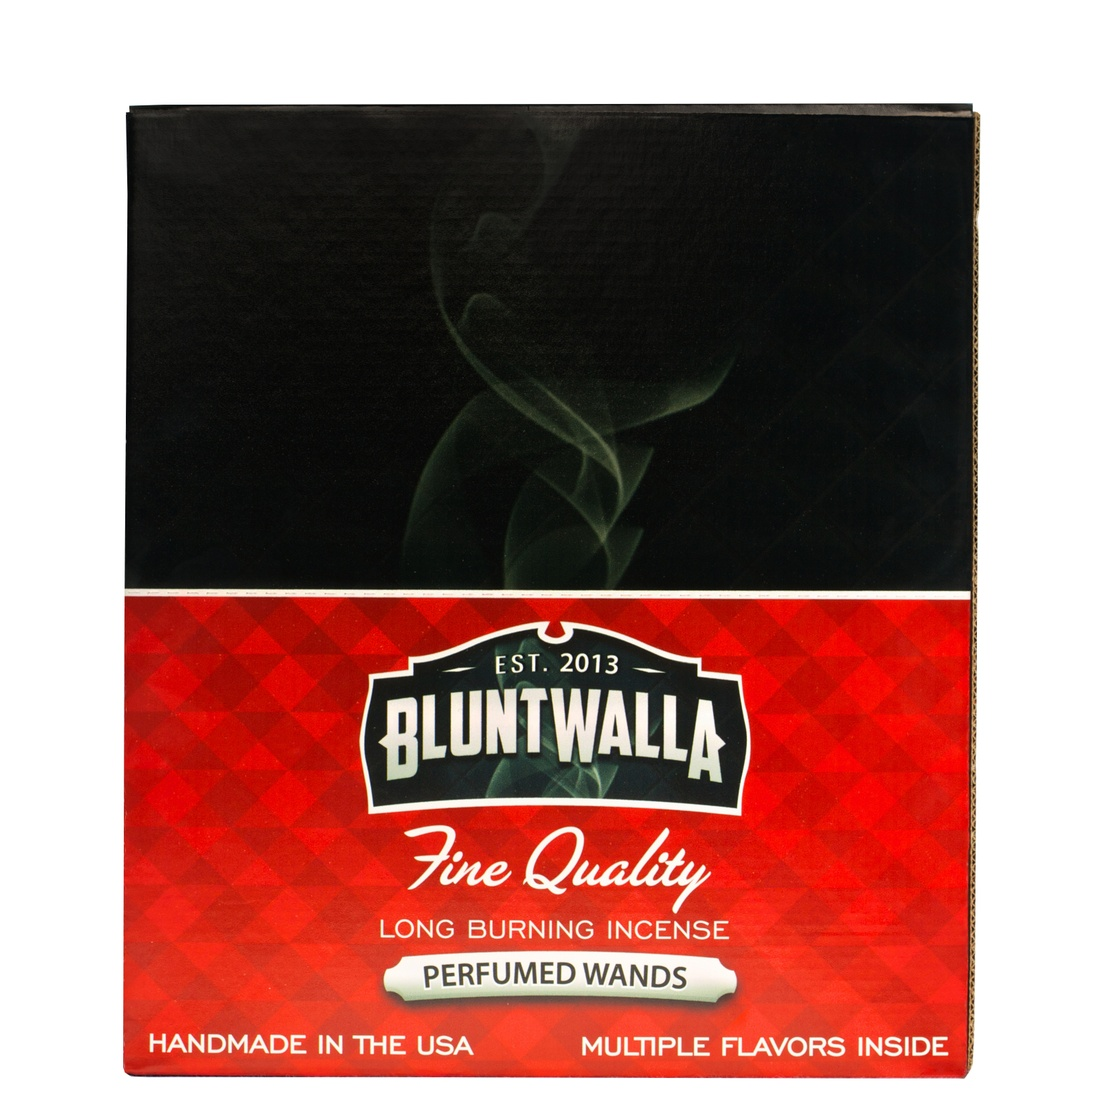 Bluntwalla Incense